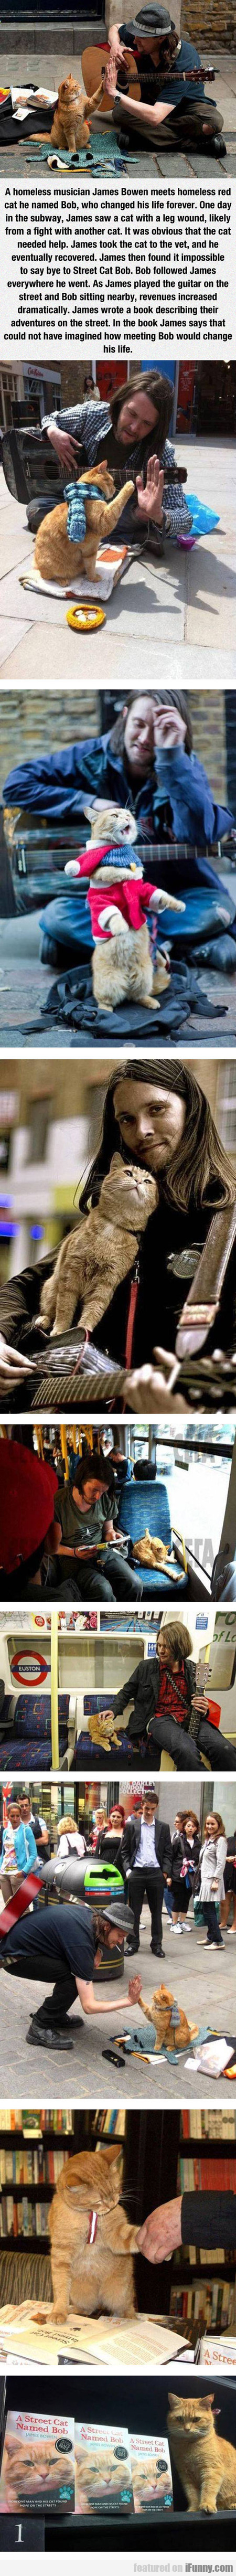 A Homeless Musician, James Bowen, And His Cat